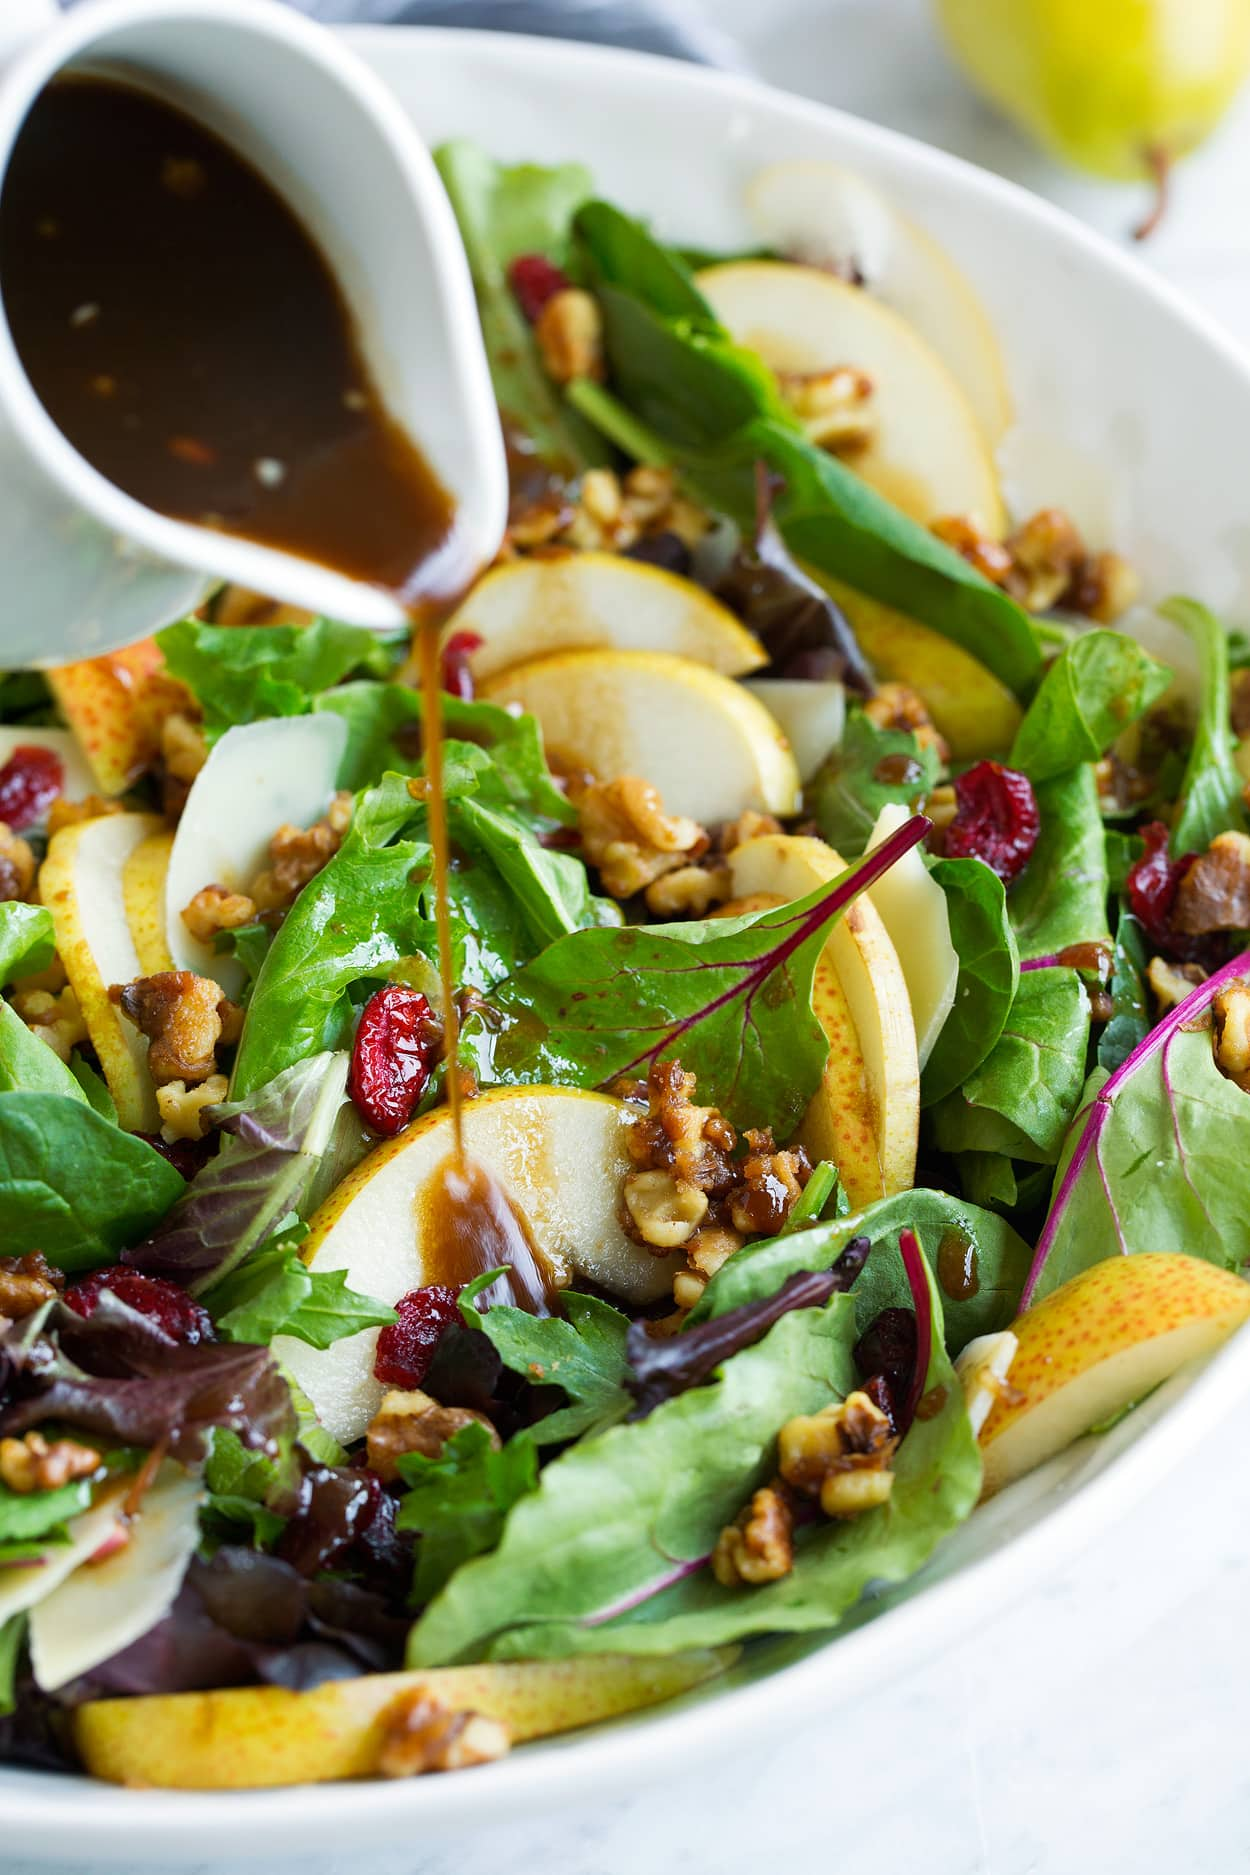 Pouring Balsamic Vinaigrette over Pear Salad in Salad Bowl